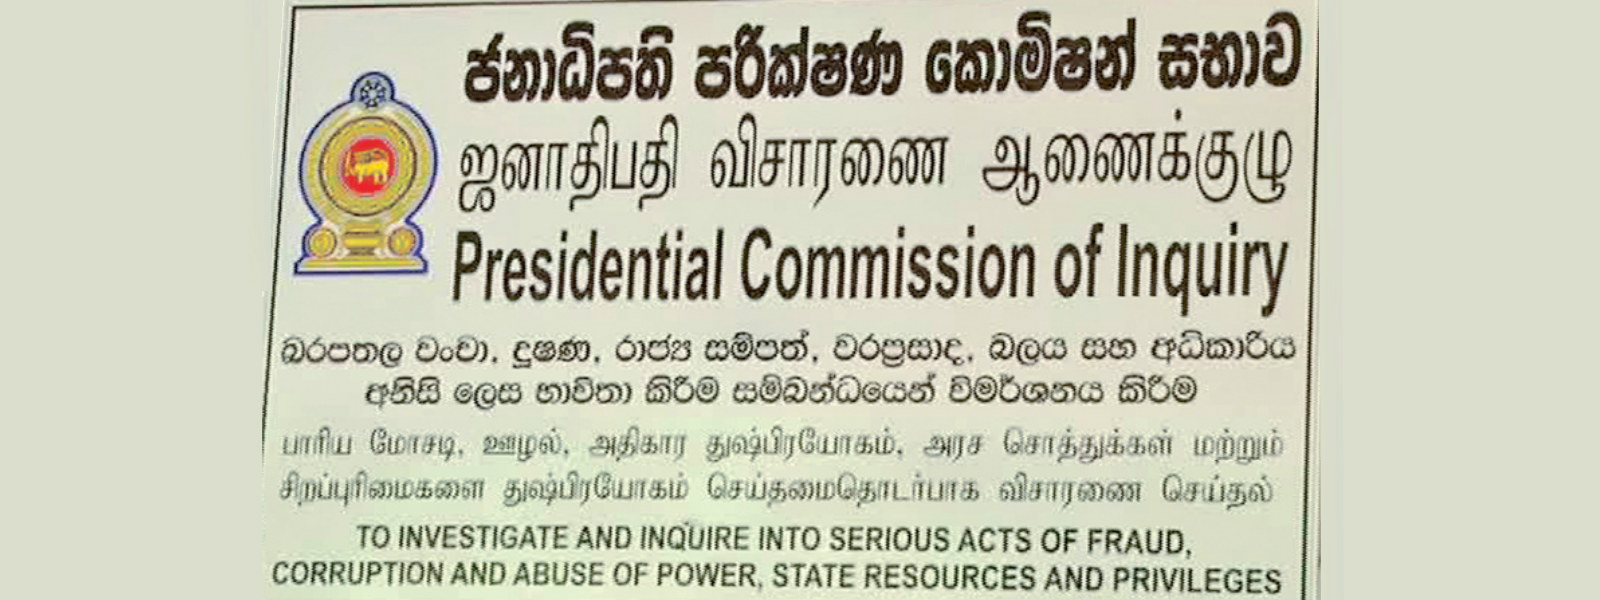 Notice issued on Cabinet Secretary by PCoI